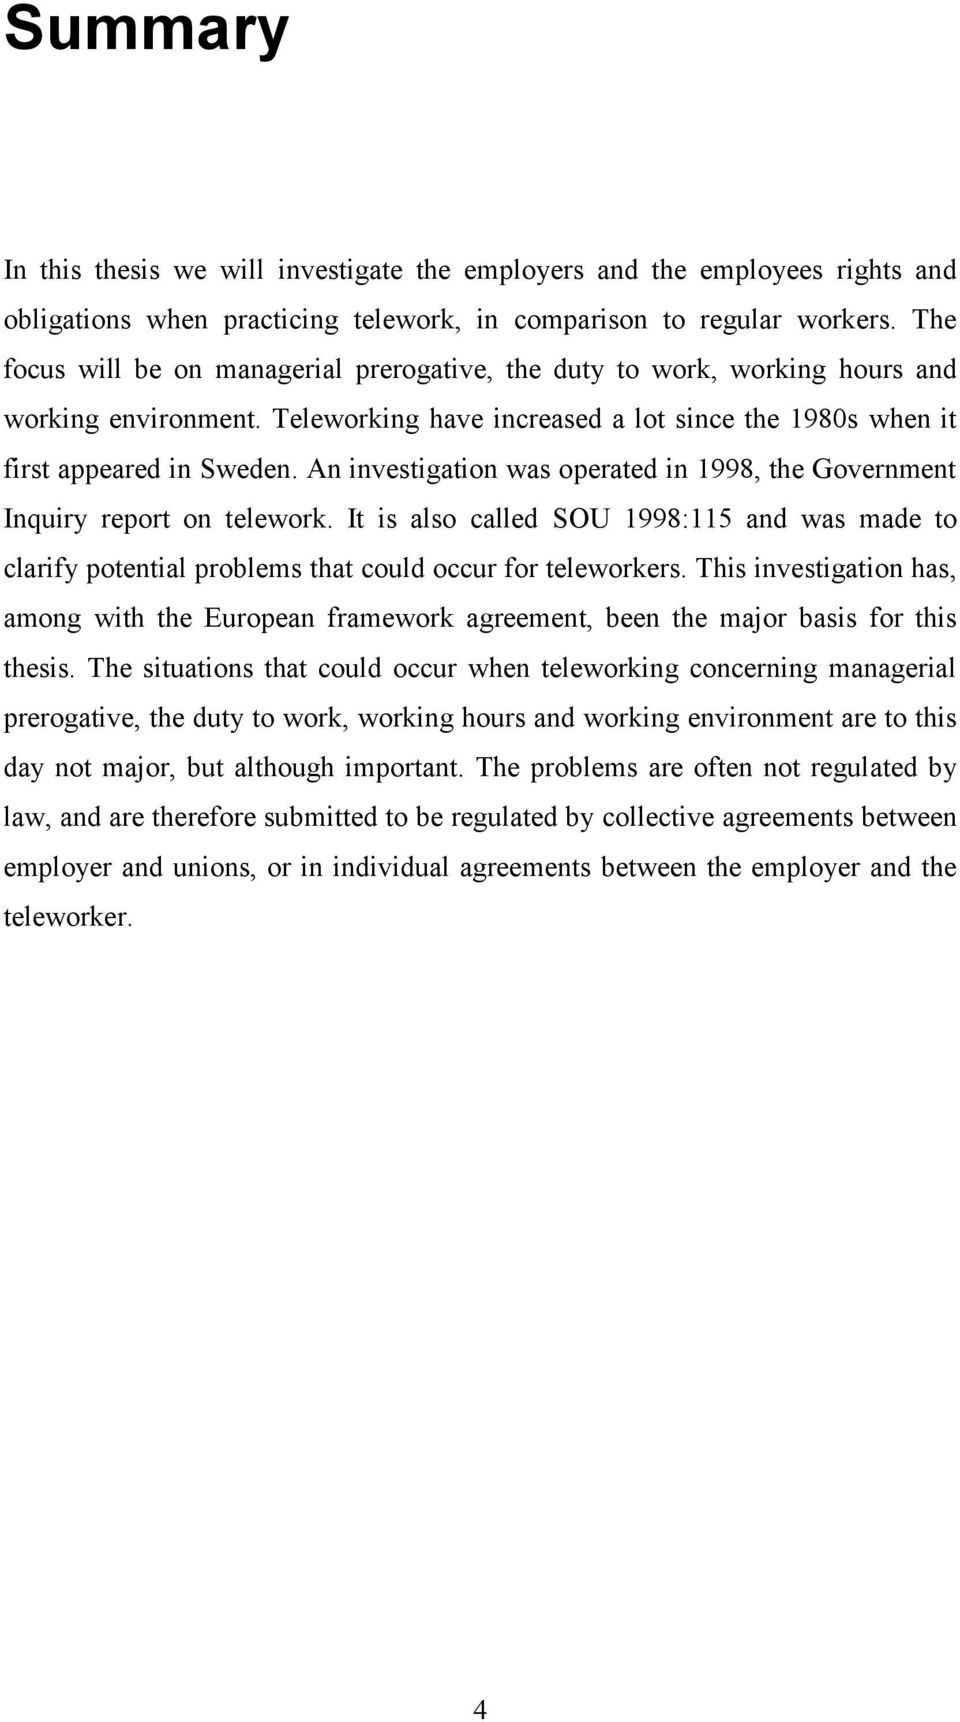 An investigation was operated in 1998, the Government Inquiry report on telework. It is also called SOU 1998:115 and was made to clarify potential problems that could occur for teleworkers.